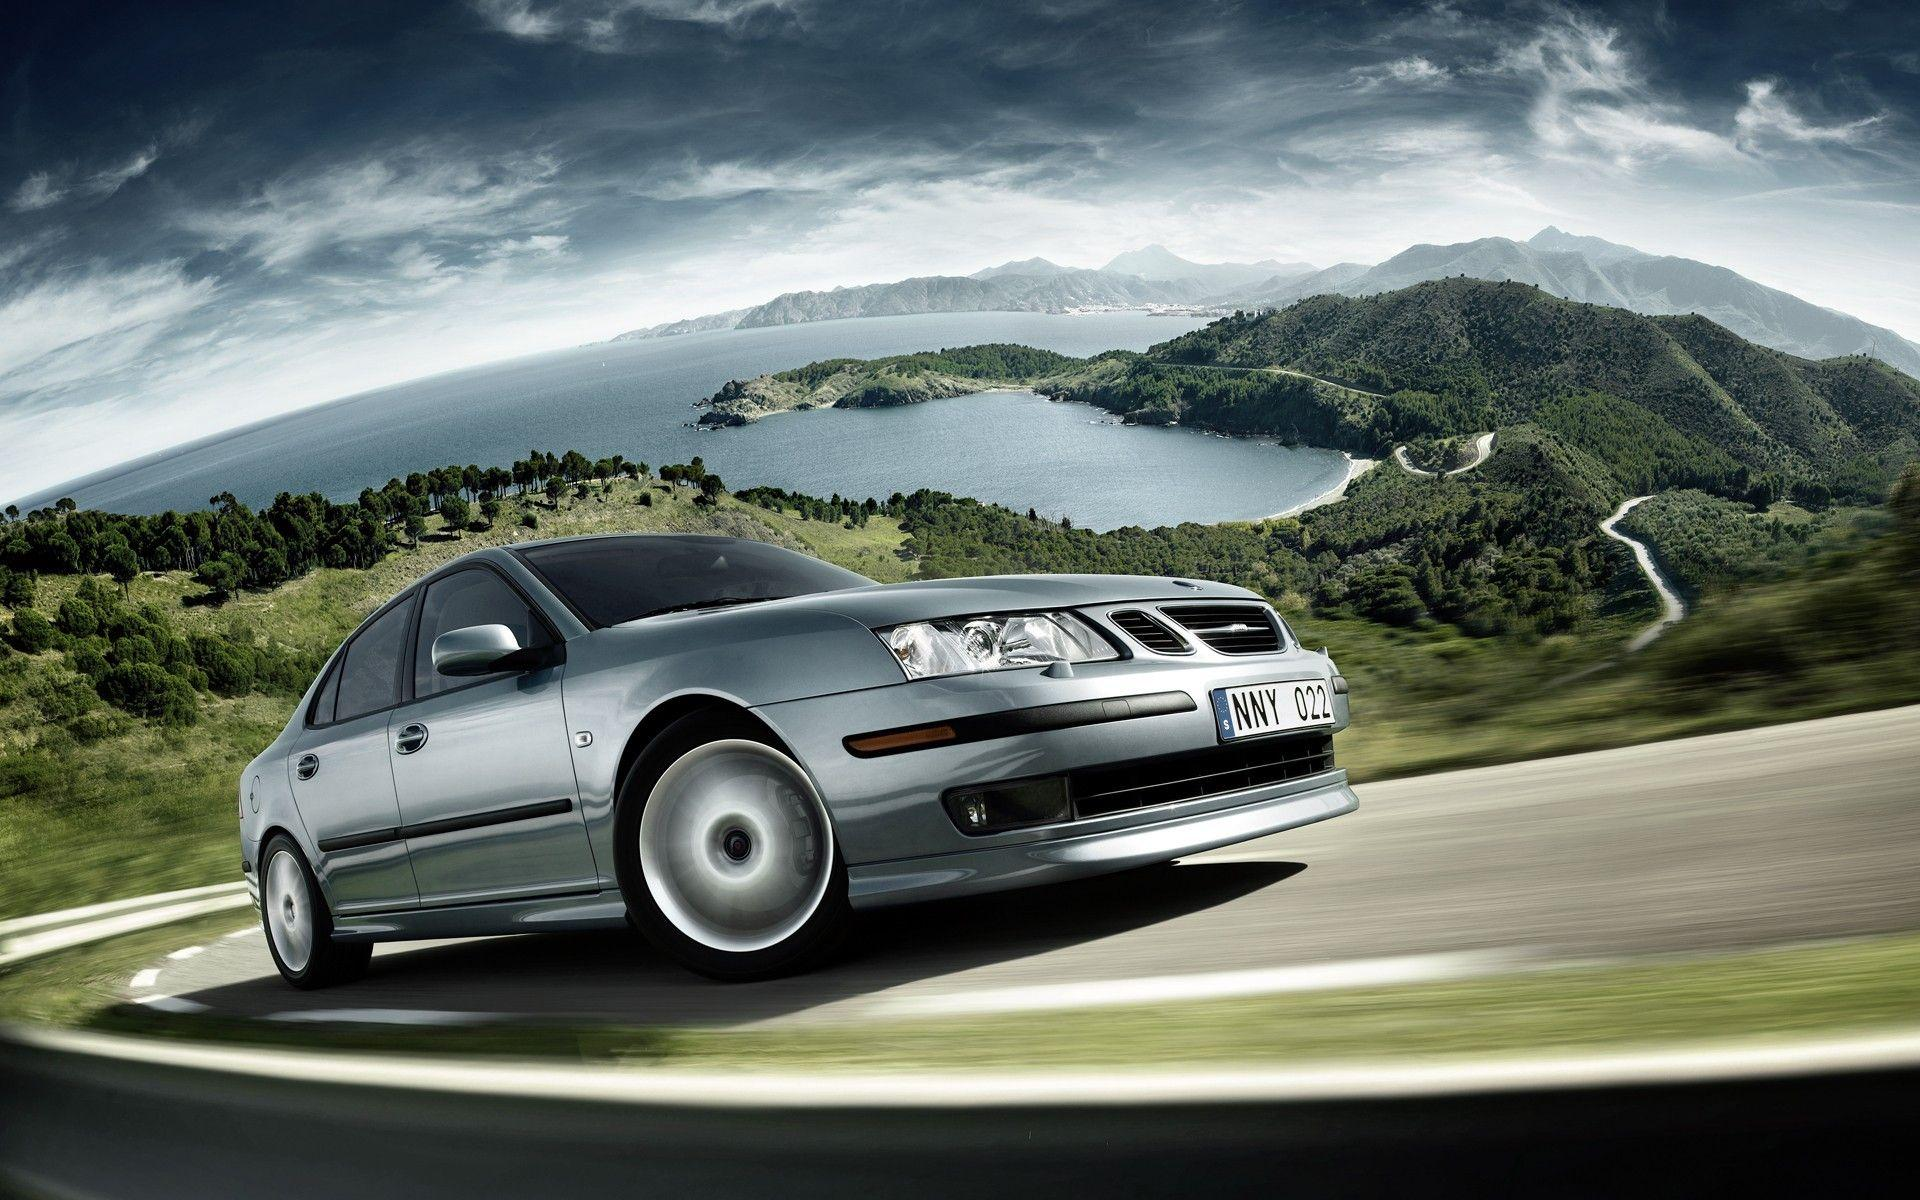 Saab Wallpapers HD Photos, Wallpapers and other Image